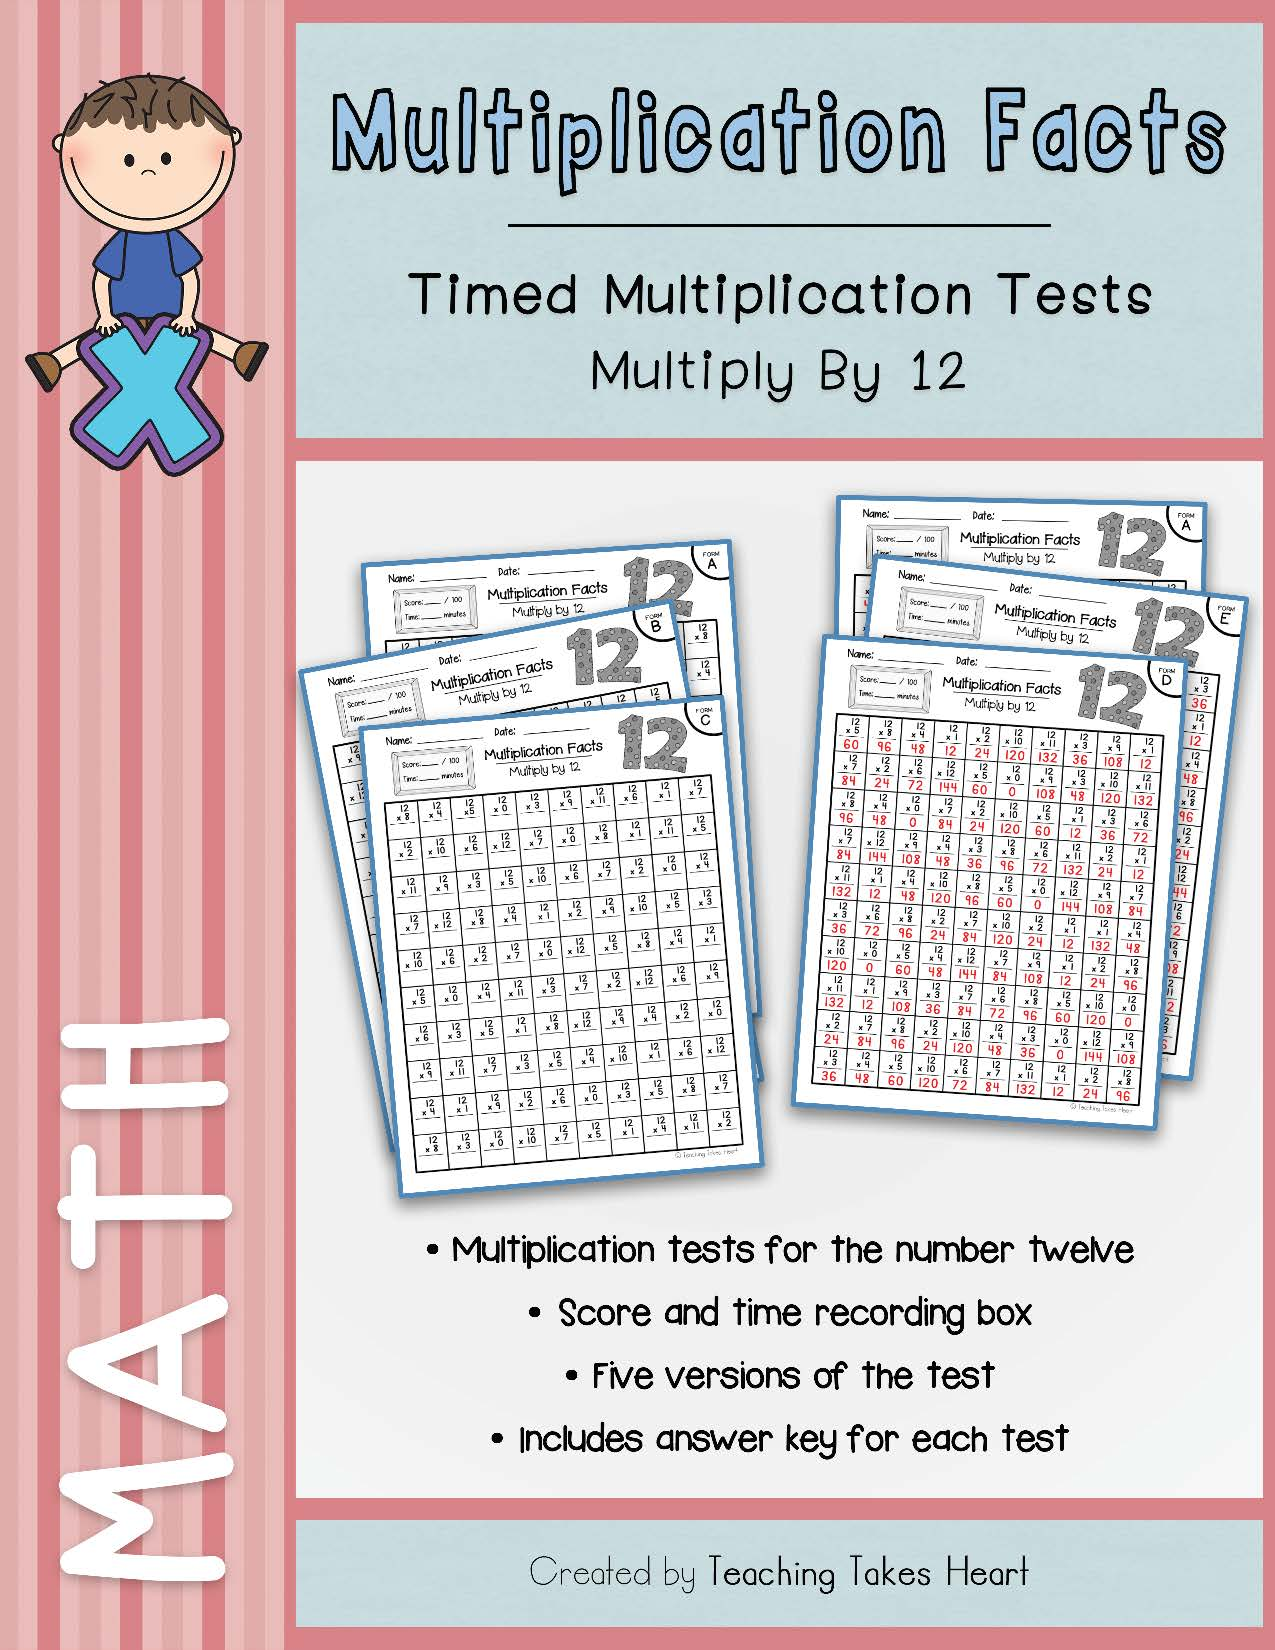 Multiplication Timed Tests Multiply By 12